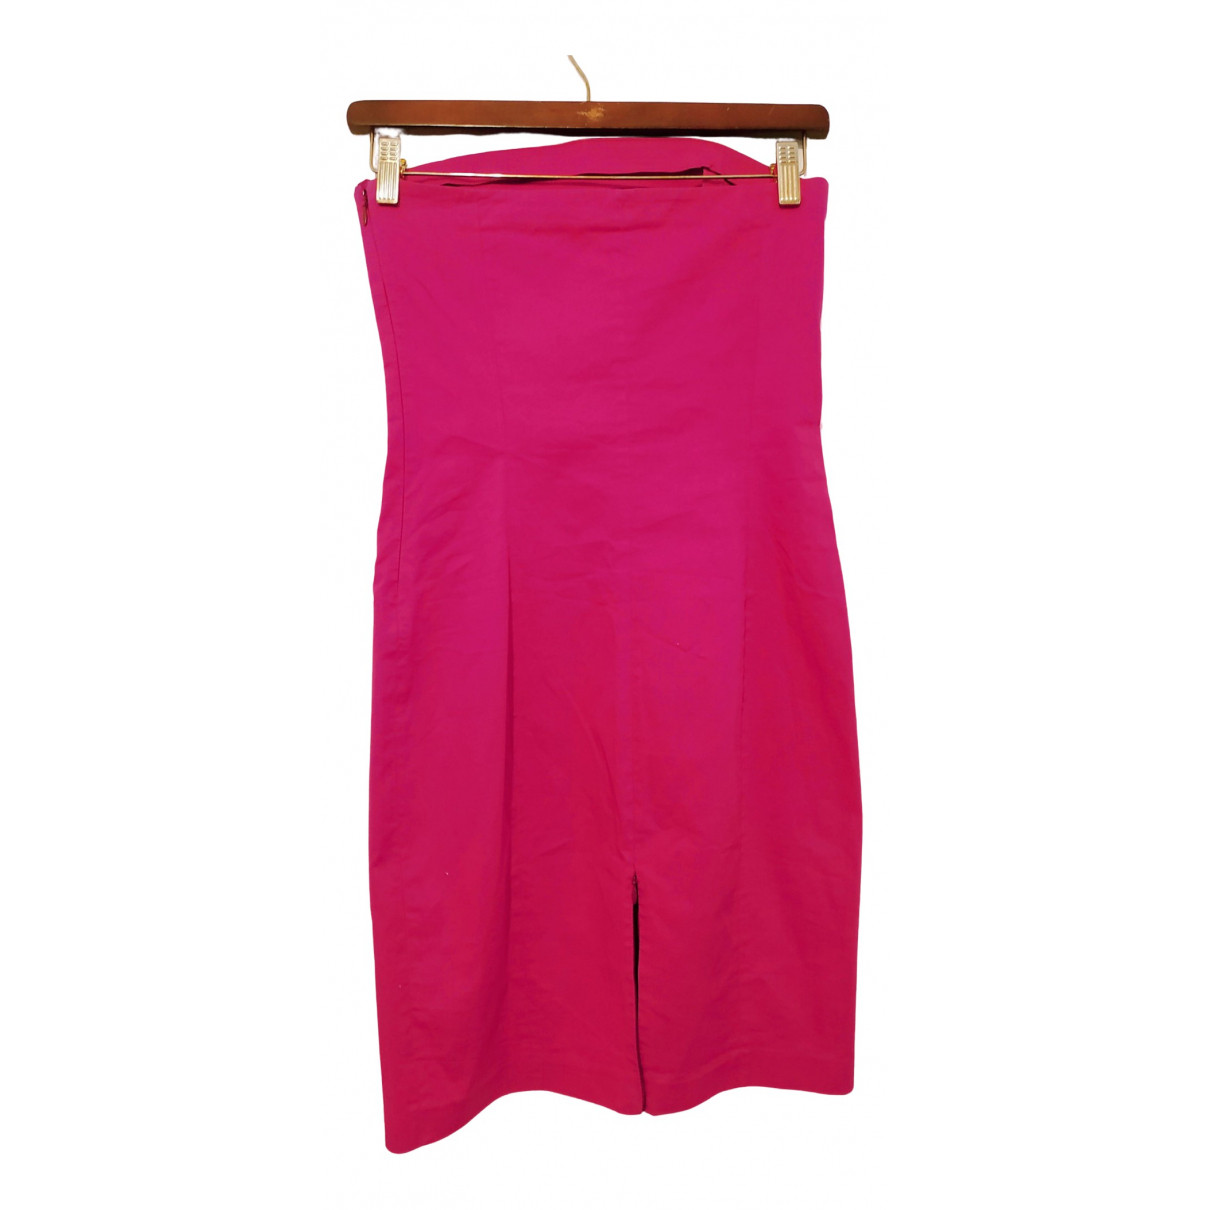 Patrizia Pepe N Pink Cotton - elasthane dress for Women 42 IT